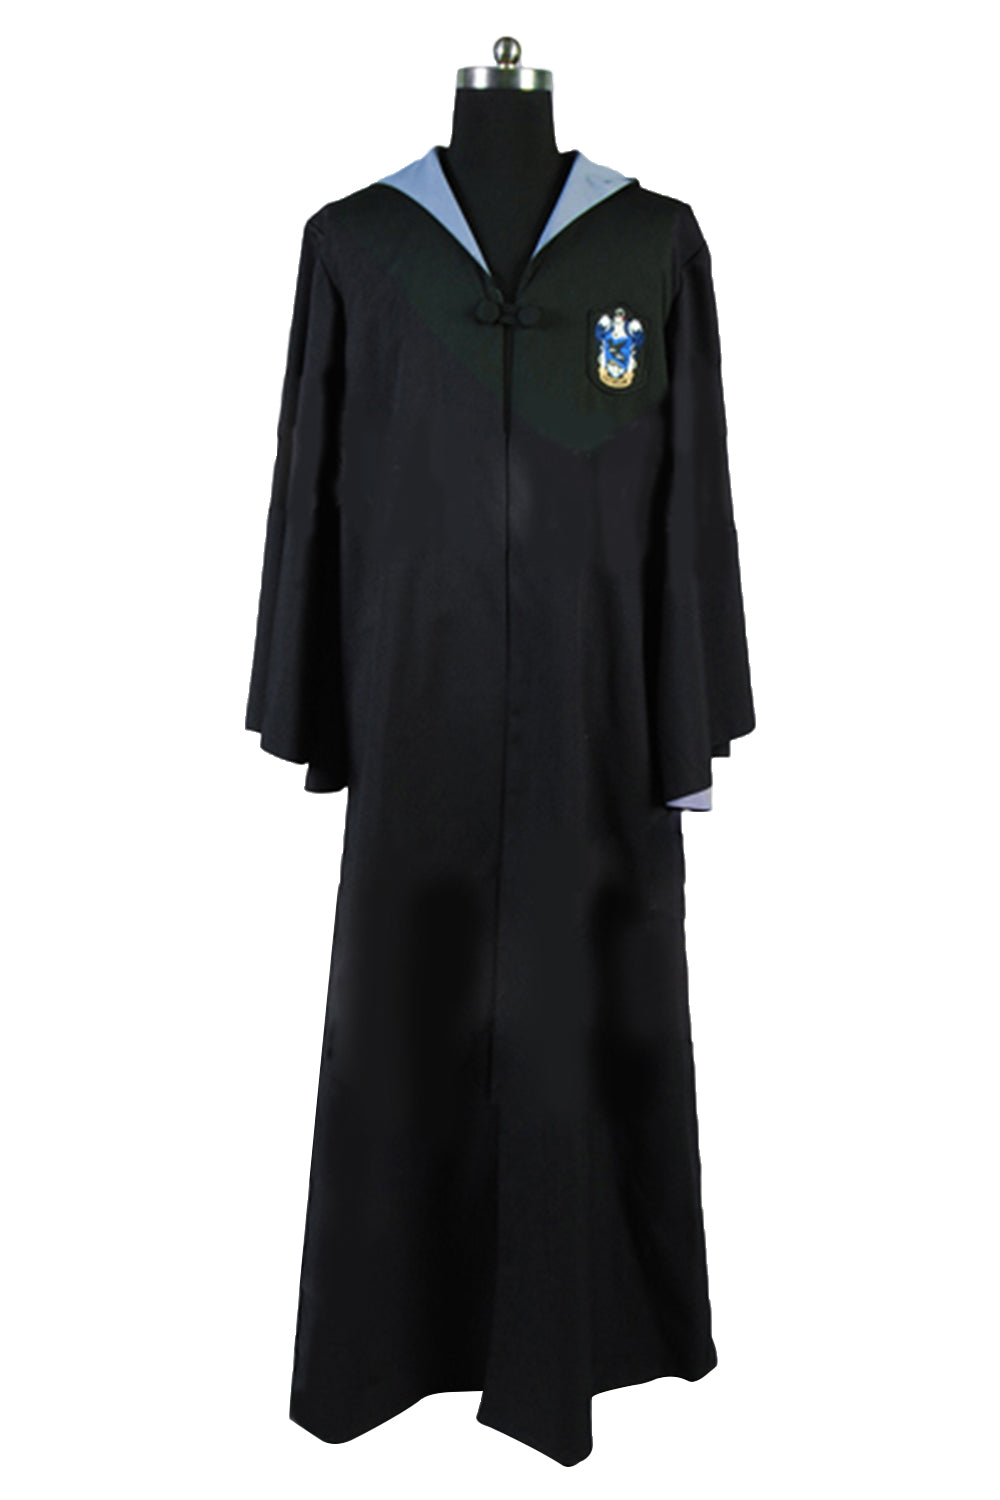 Harry Potter Ravenclaw of Hogwarts Robe Umhang Cosplay Kostüm